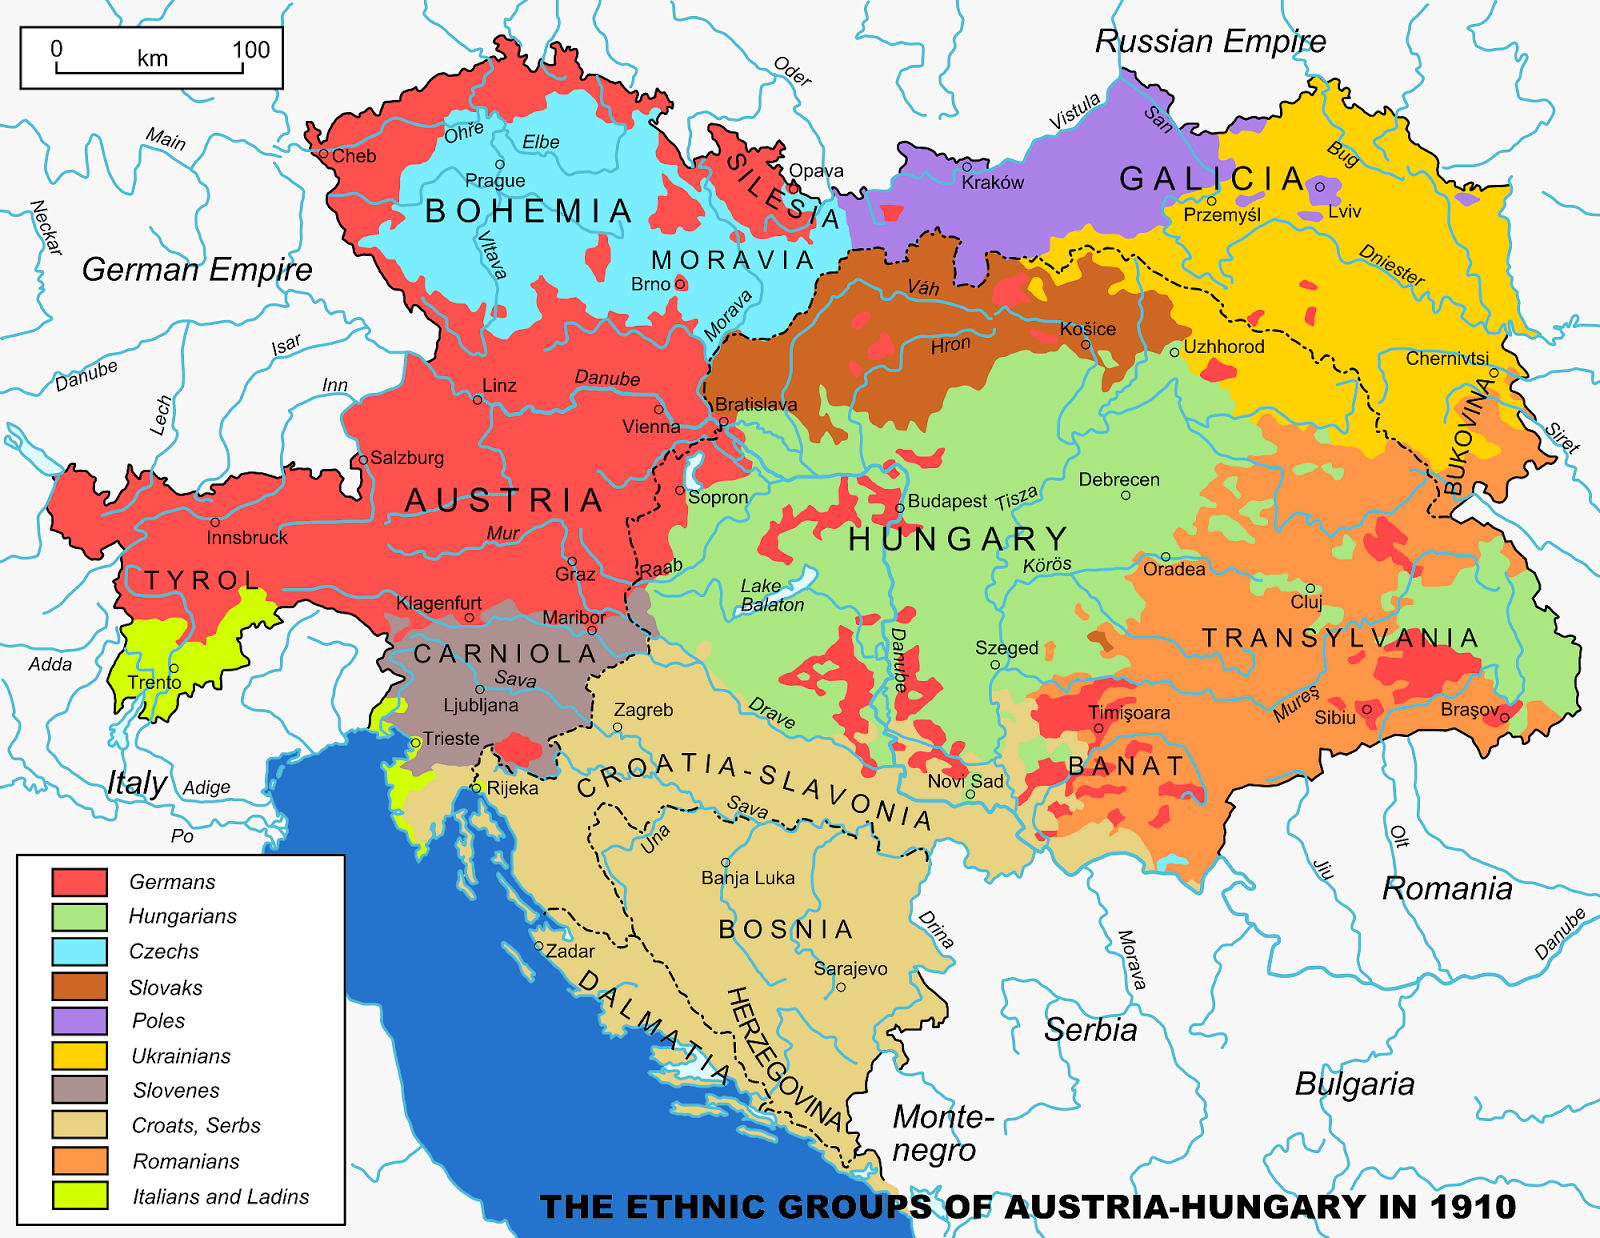 Austrian hungarian empire 18671918 ethnic groups map 1910 austrian hungarian empire 18671918 ethnic groups map 1910 empire of austria gumiabroncs Gallery